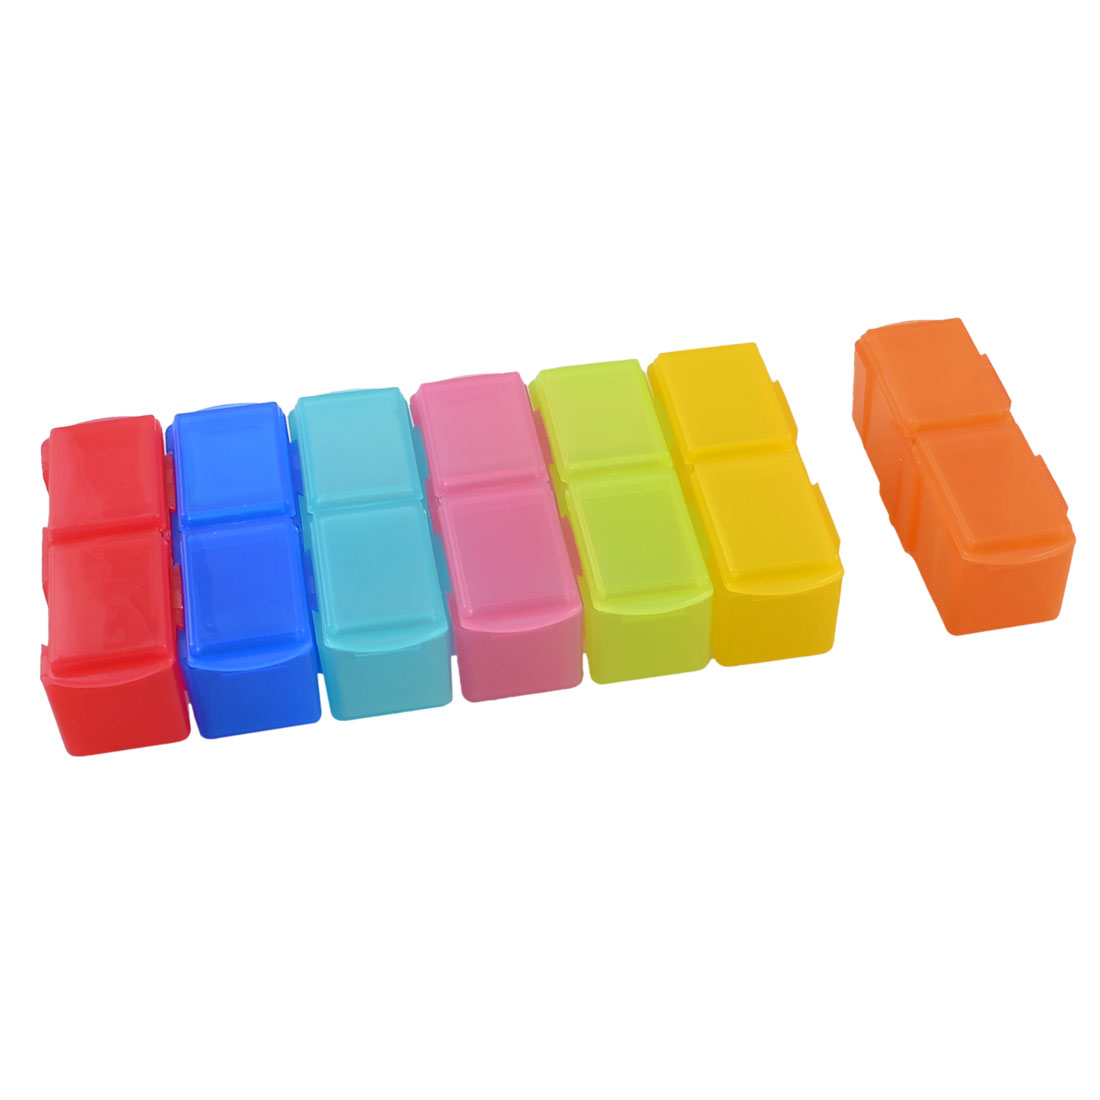 Assorted Colors Plastic Detachable 14 Mini Boxes Linked Storage Case Box Holder(China (Mainland))